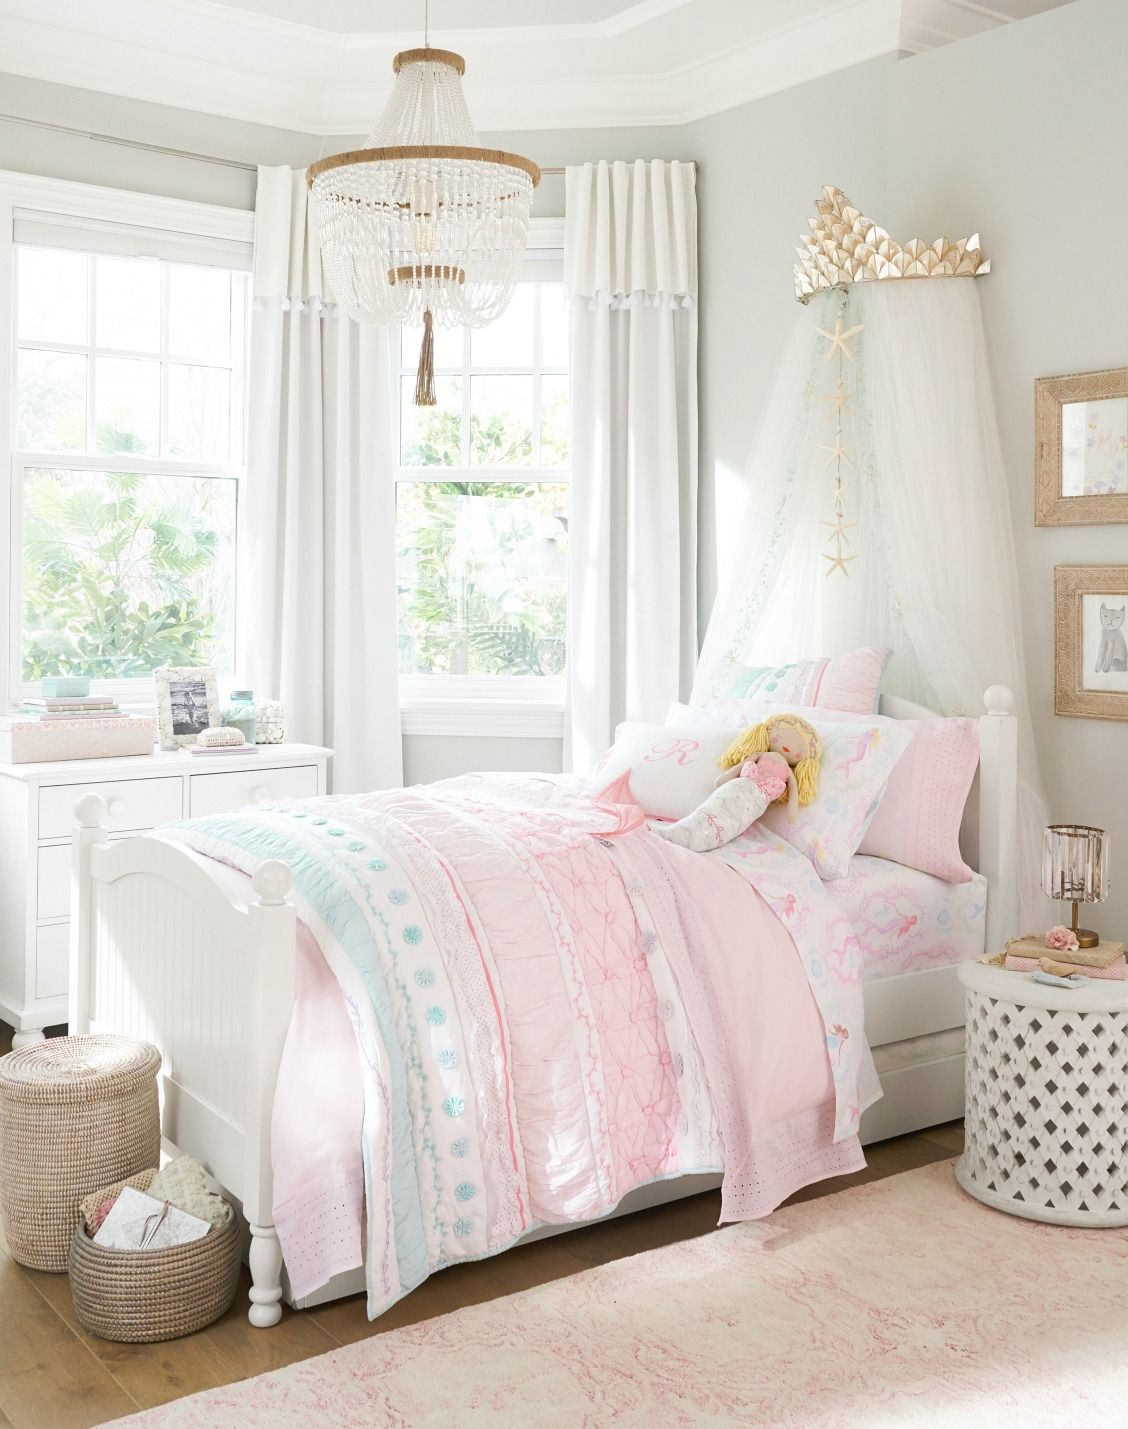 Bailey Ruffle Reversible Quilt Girl bedroom designs